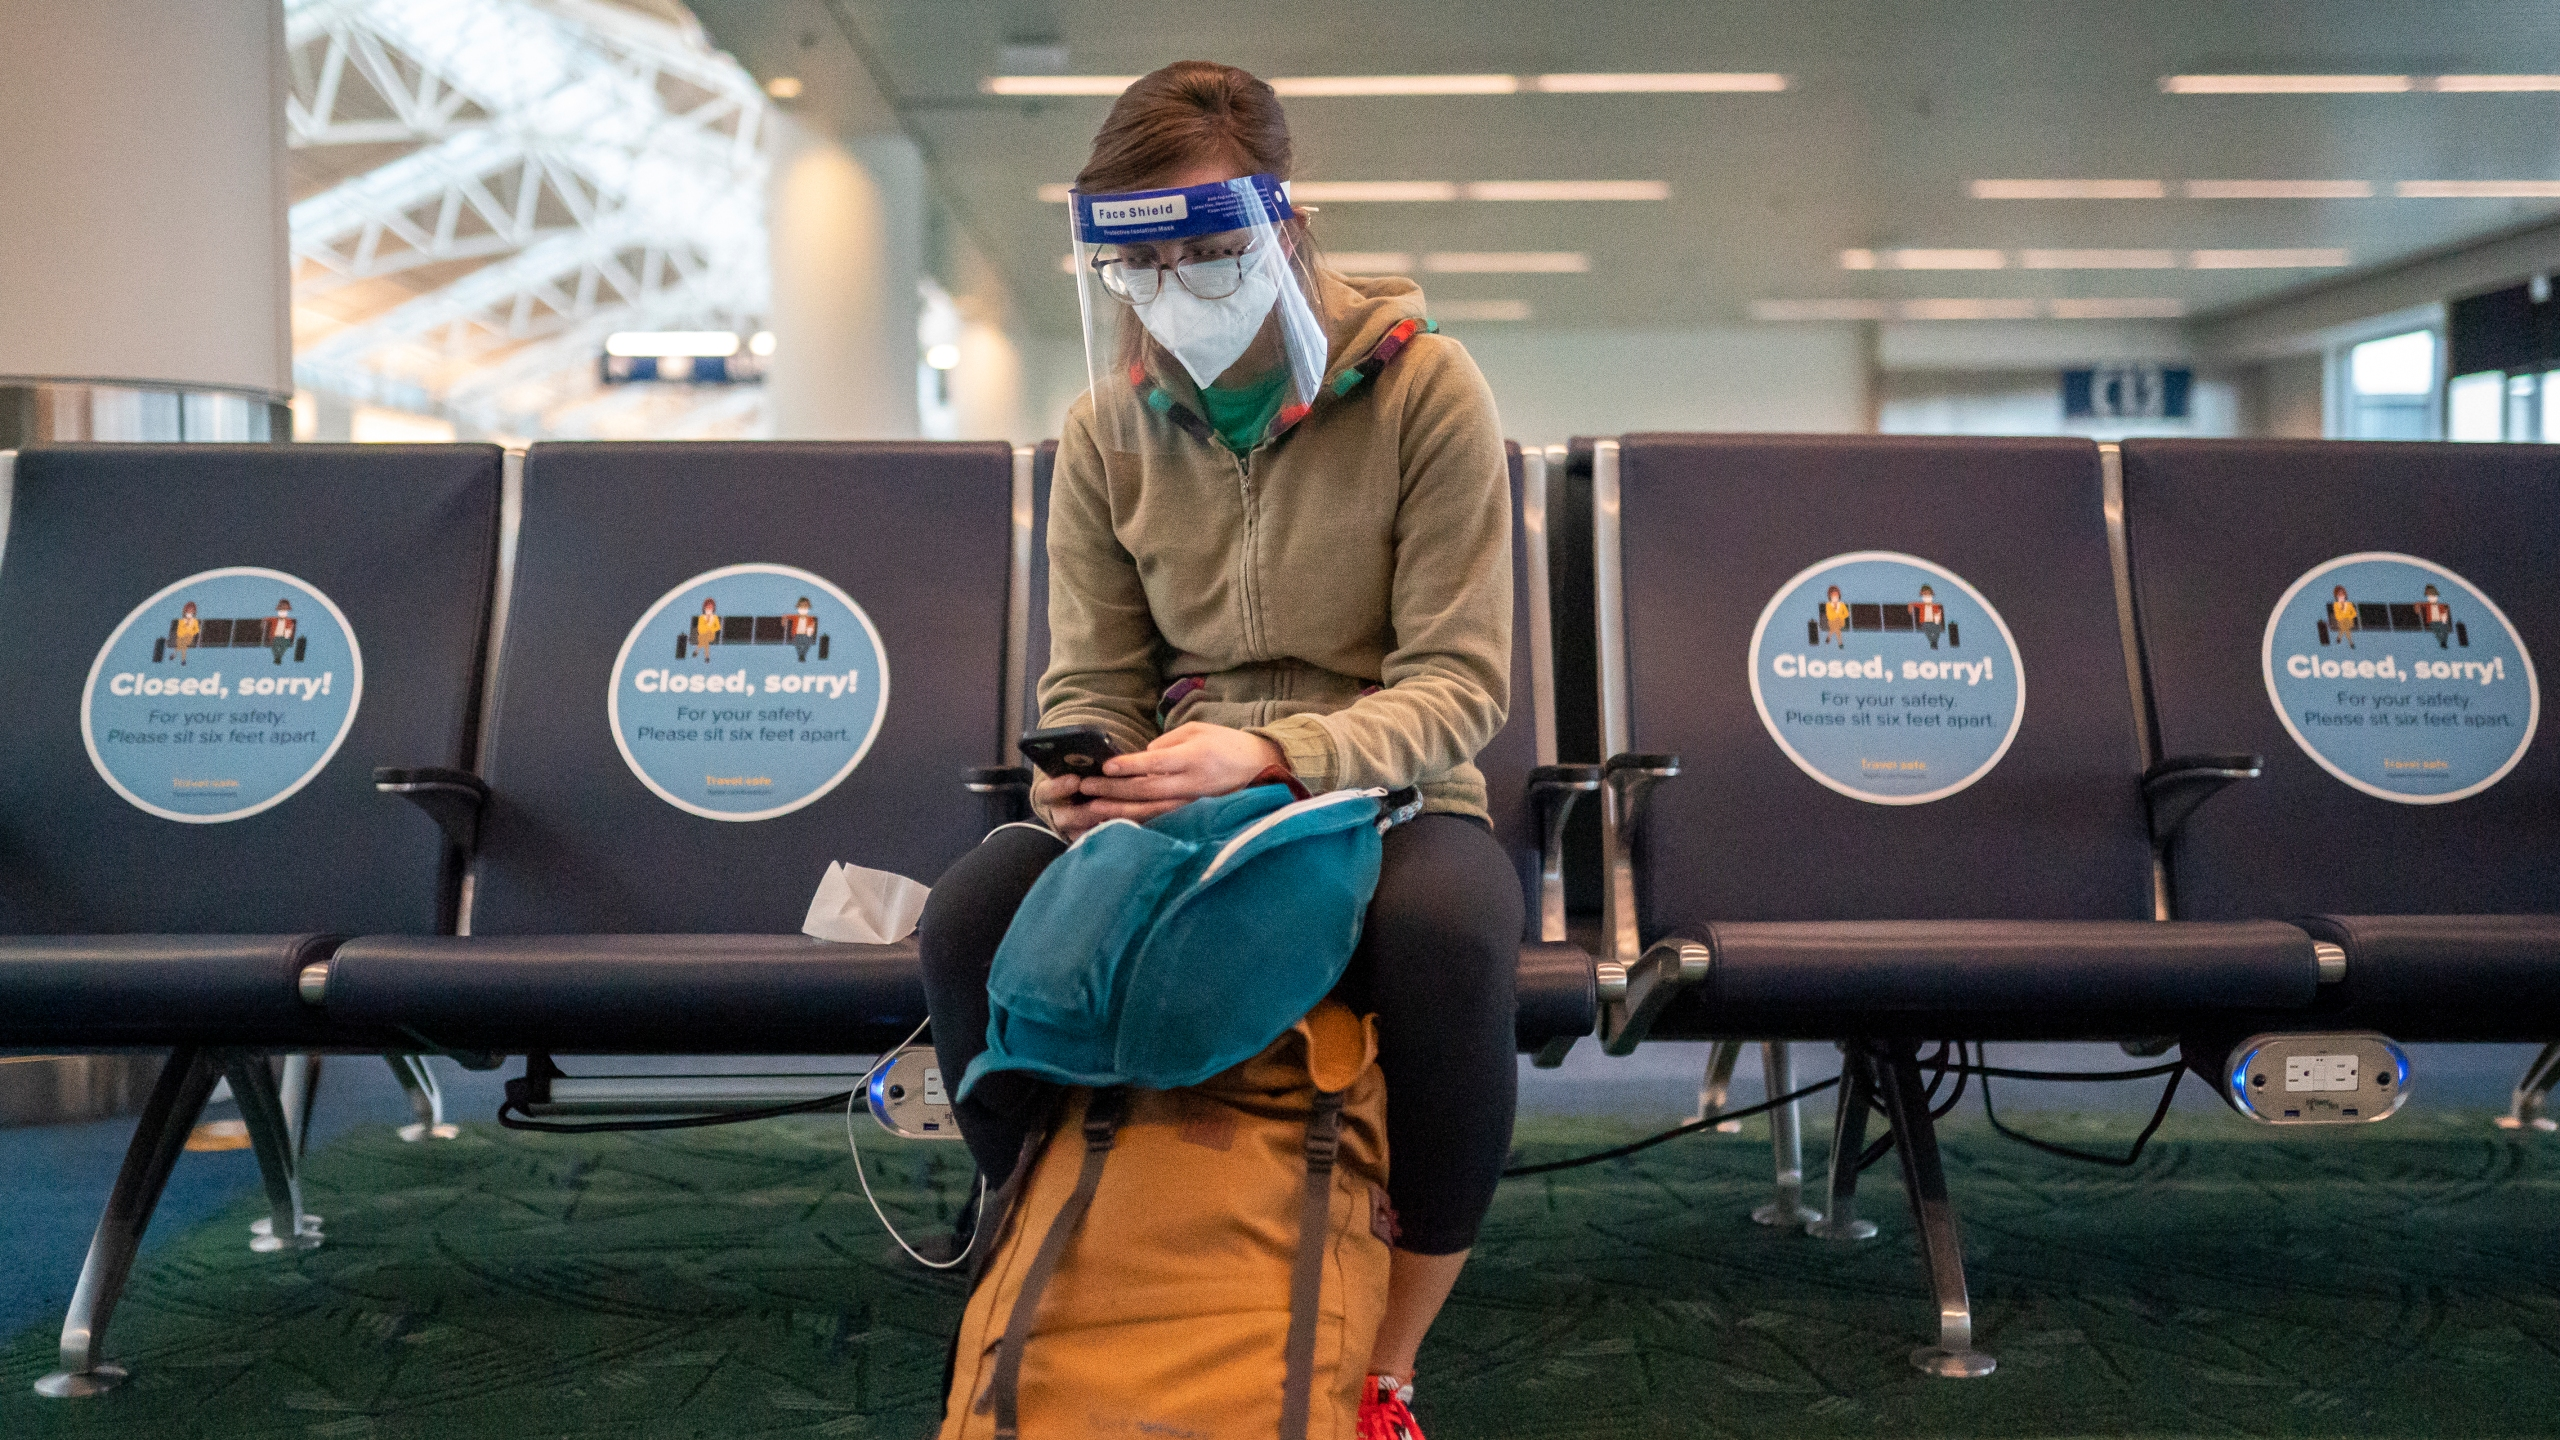 A traveler checks their phone while waiting for a flight at Portland International Airport on November 25, 2020 in Portland, Oregon. Millions of Americans traveled by plane ahead of the Thanksgiving holiday, despite the CDC recommending families stay home. (Photo by Nathan Howard/Getty Images)